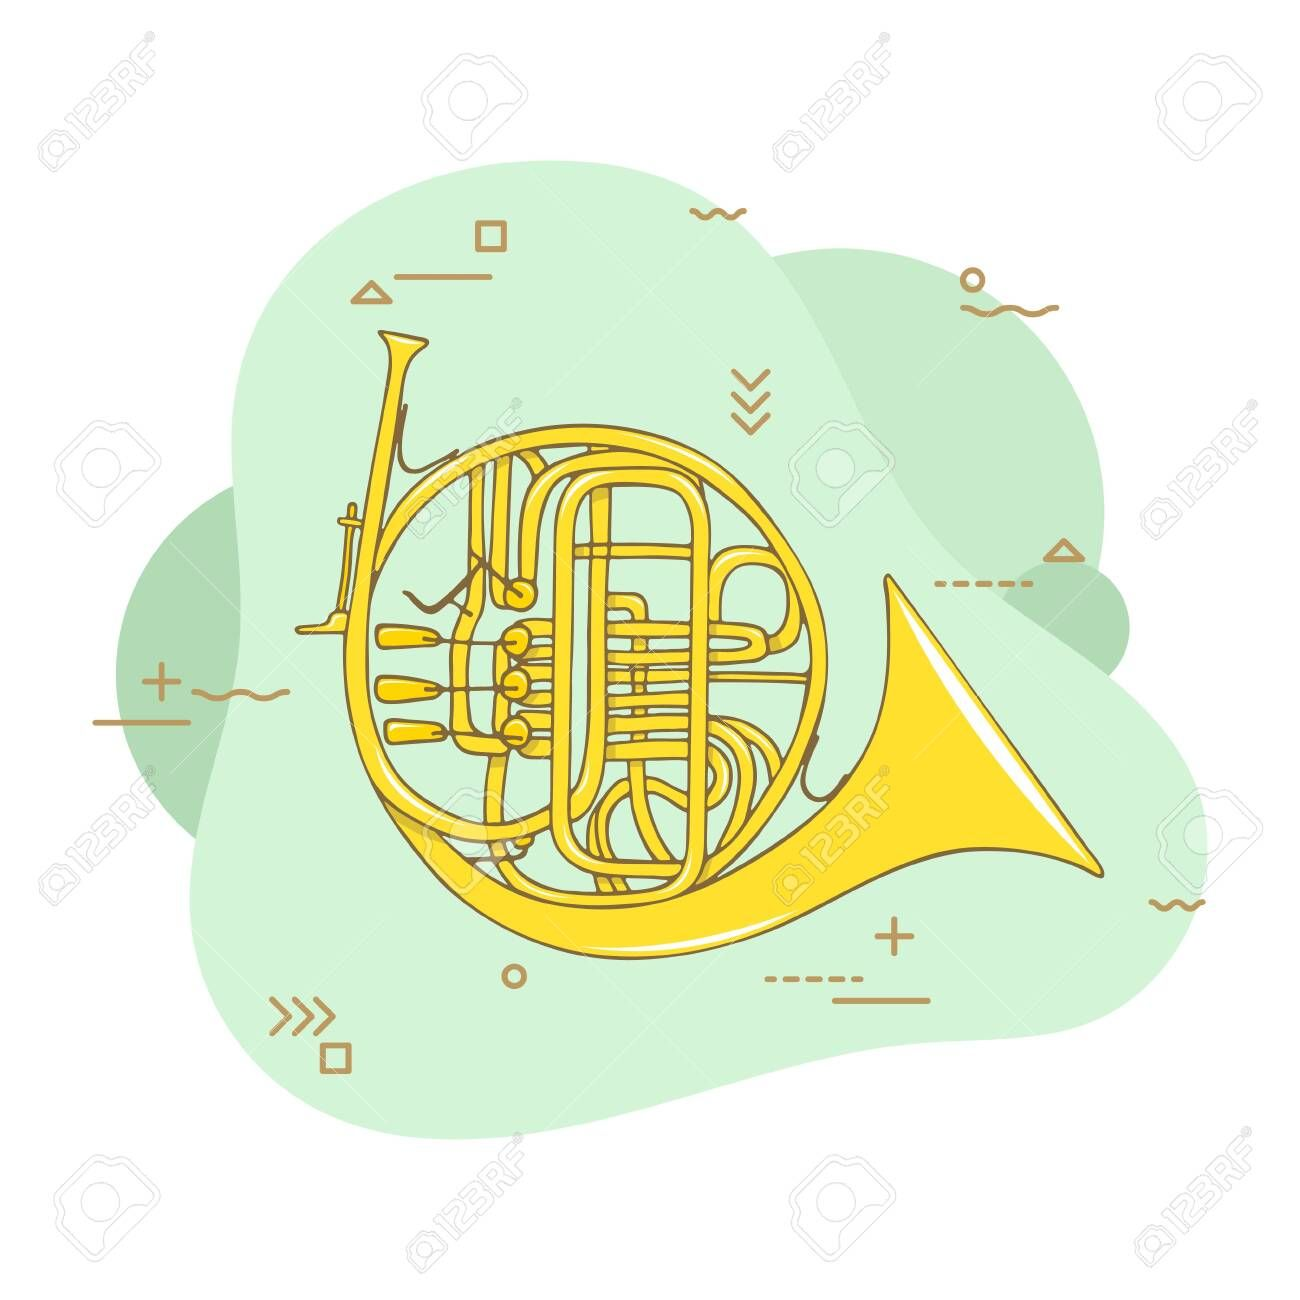 Hand Drawn French Horn Wind Musical Instrument Flat Vector Hand Drawn Illustration Affil How To Draw Hands Typography Design Layout Drawing Illustration